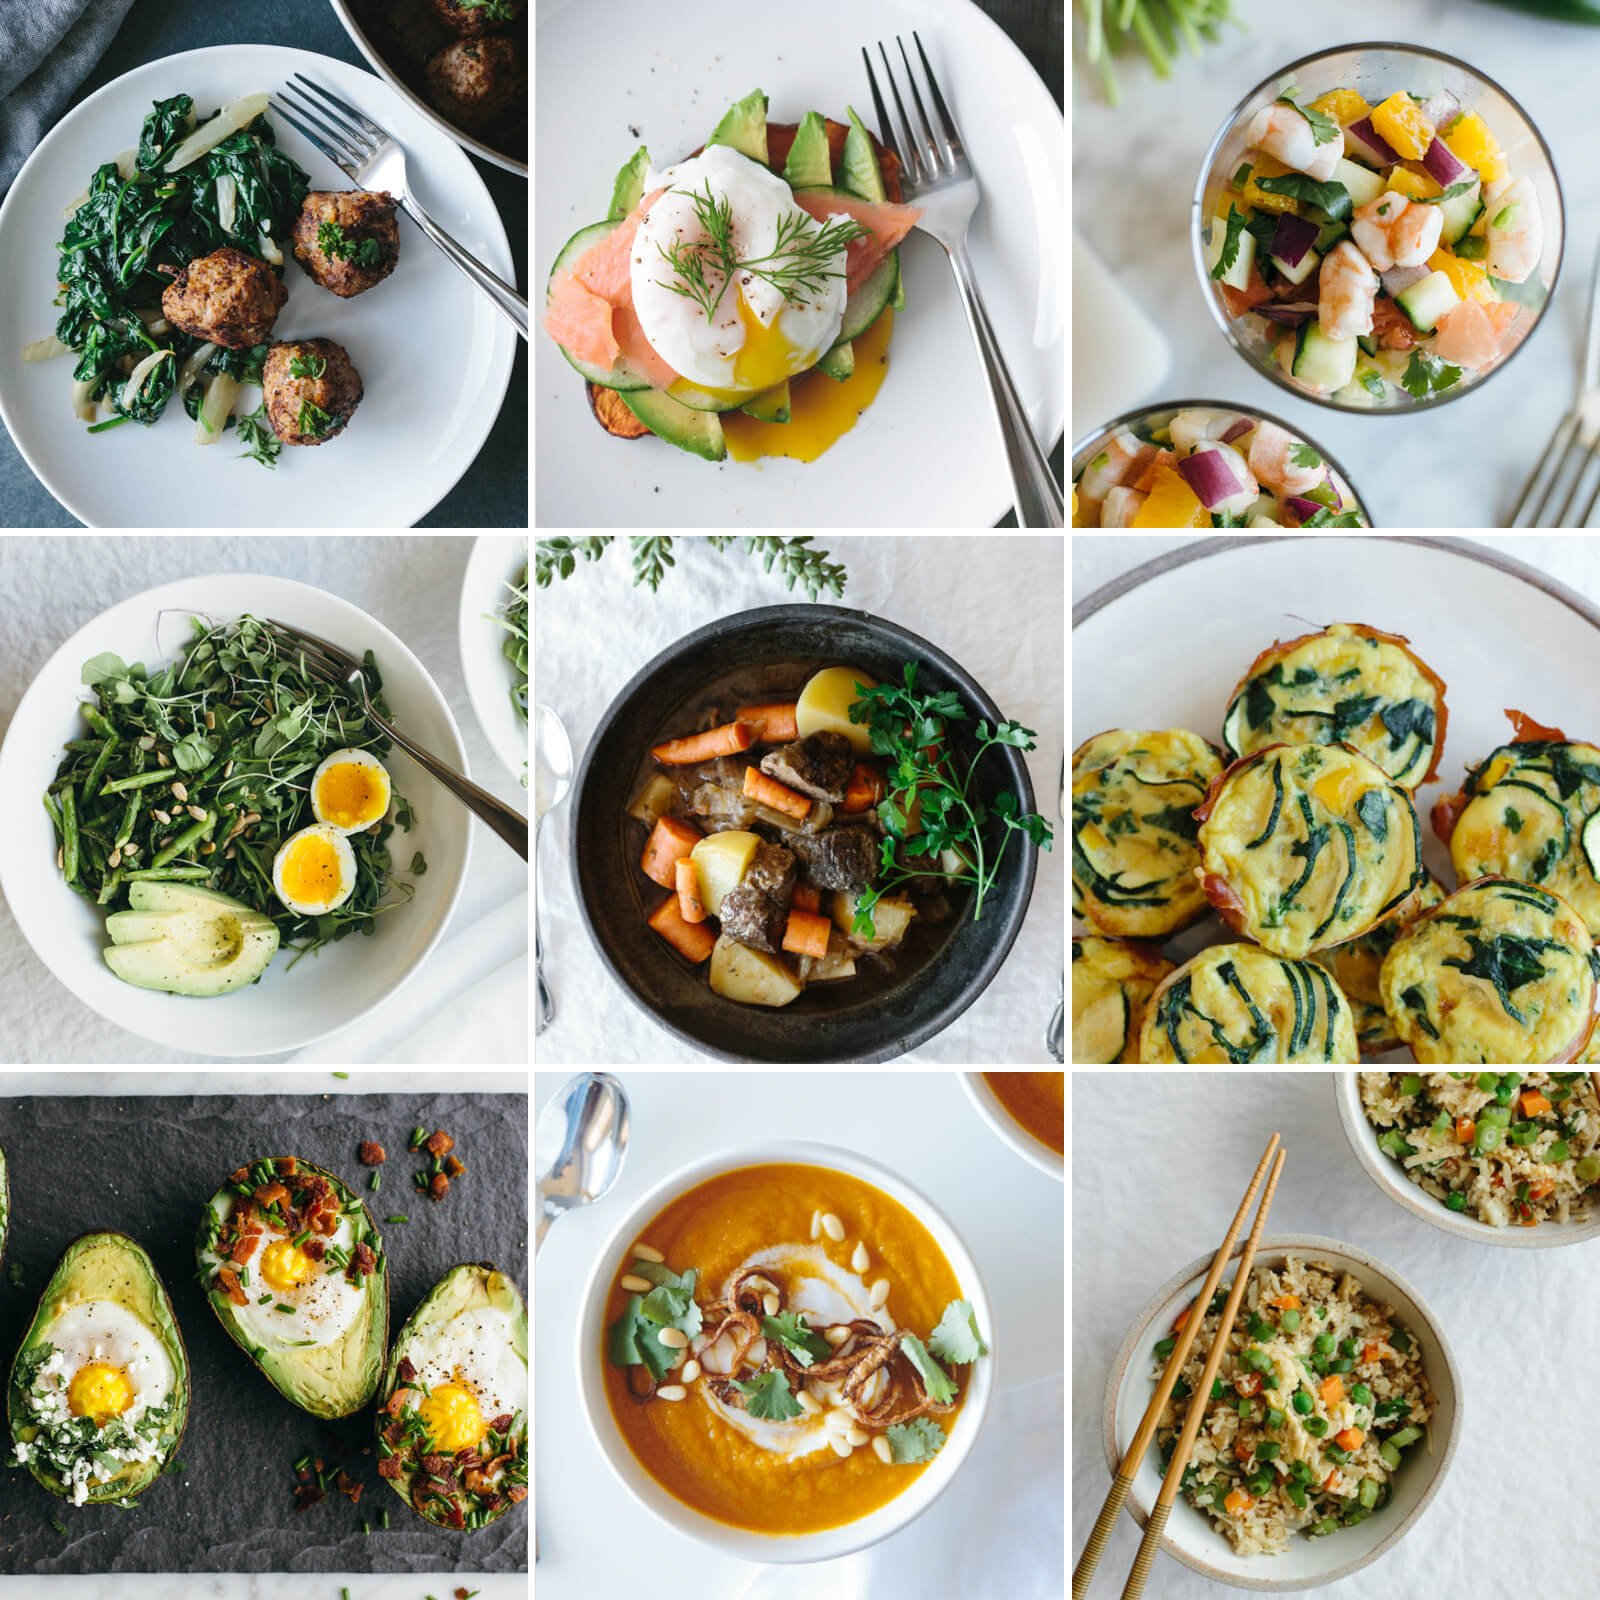 15 Whole30 Recipes for Breakfast, Lunch and Dinner